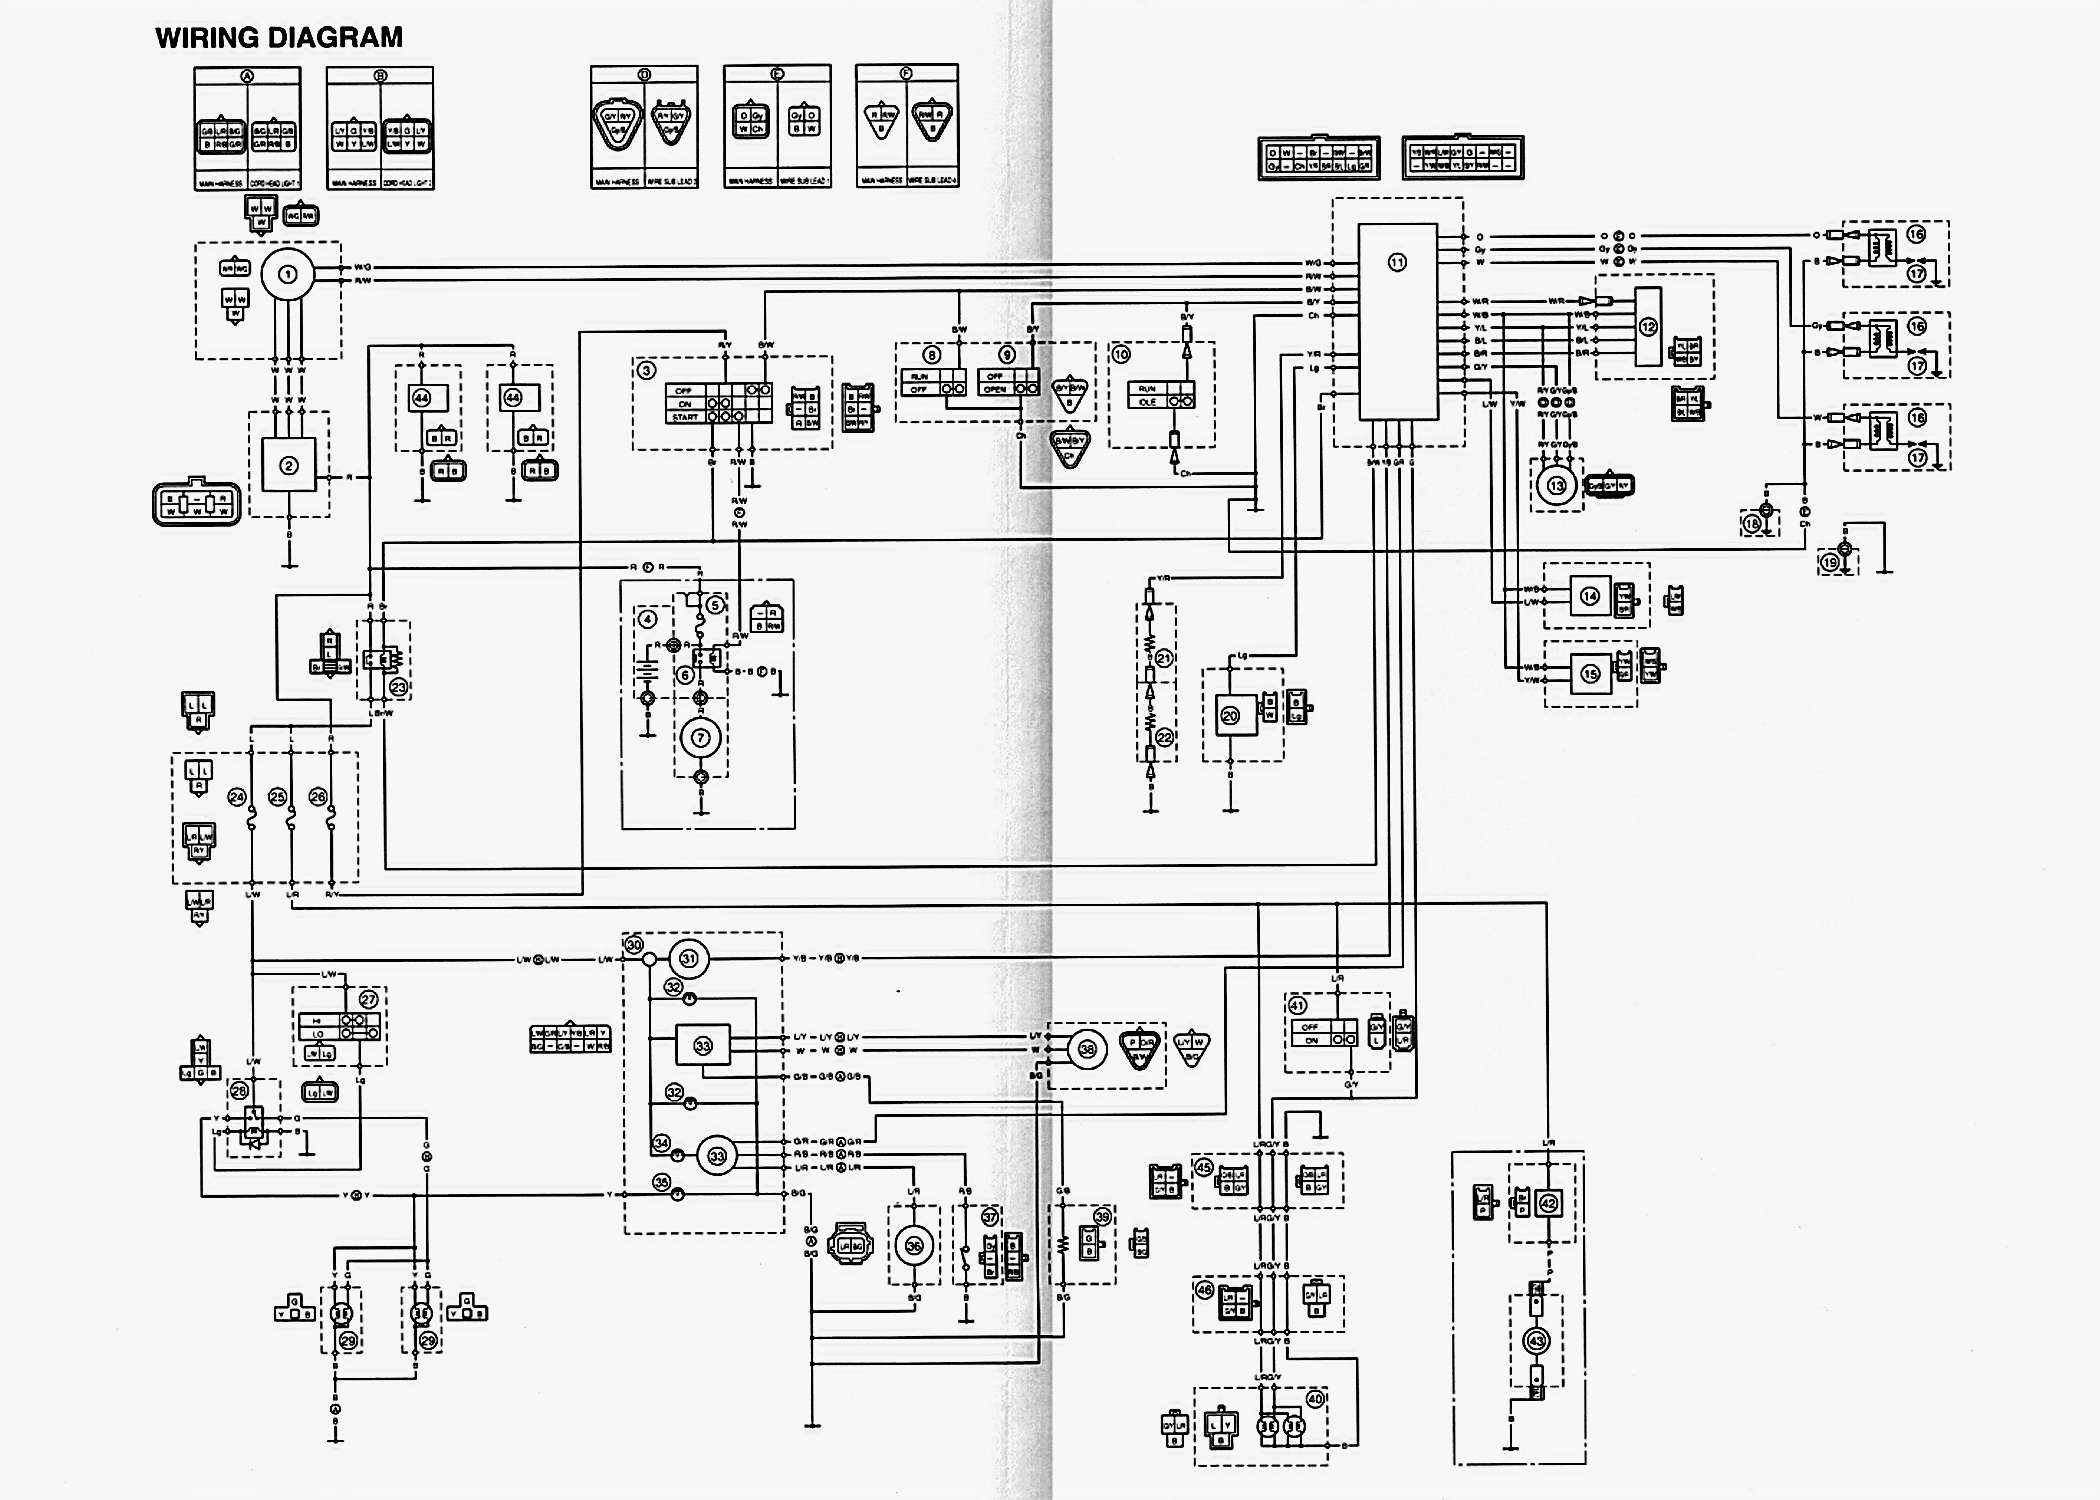 viper manual viper electrical schematic and legend pages on how to bleed the cooling system